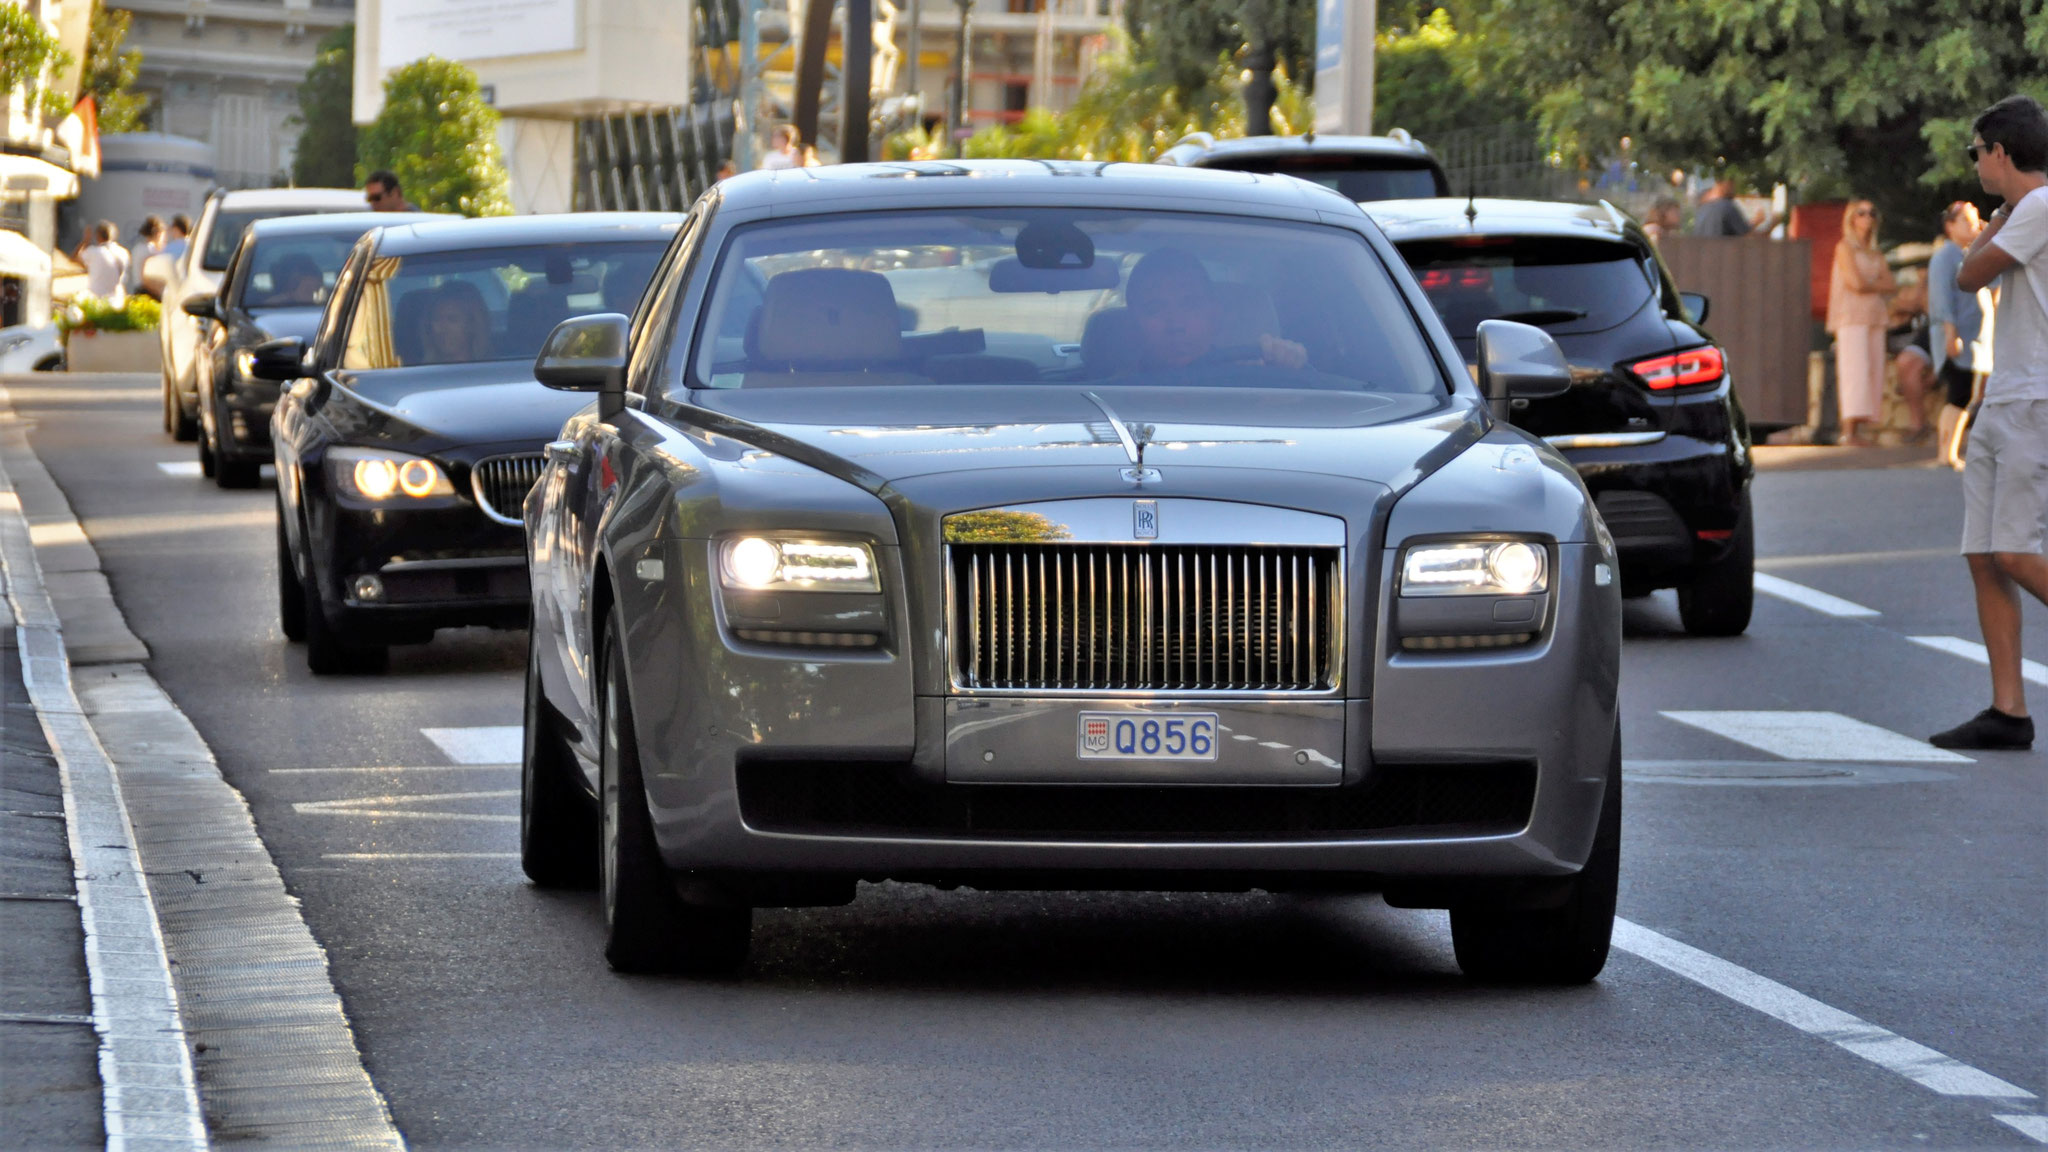 Rolls Royce Ghost - Q856 (MC)